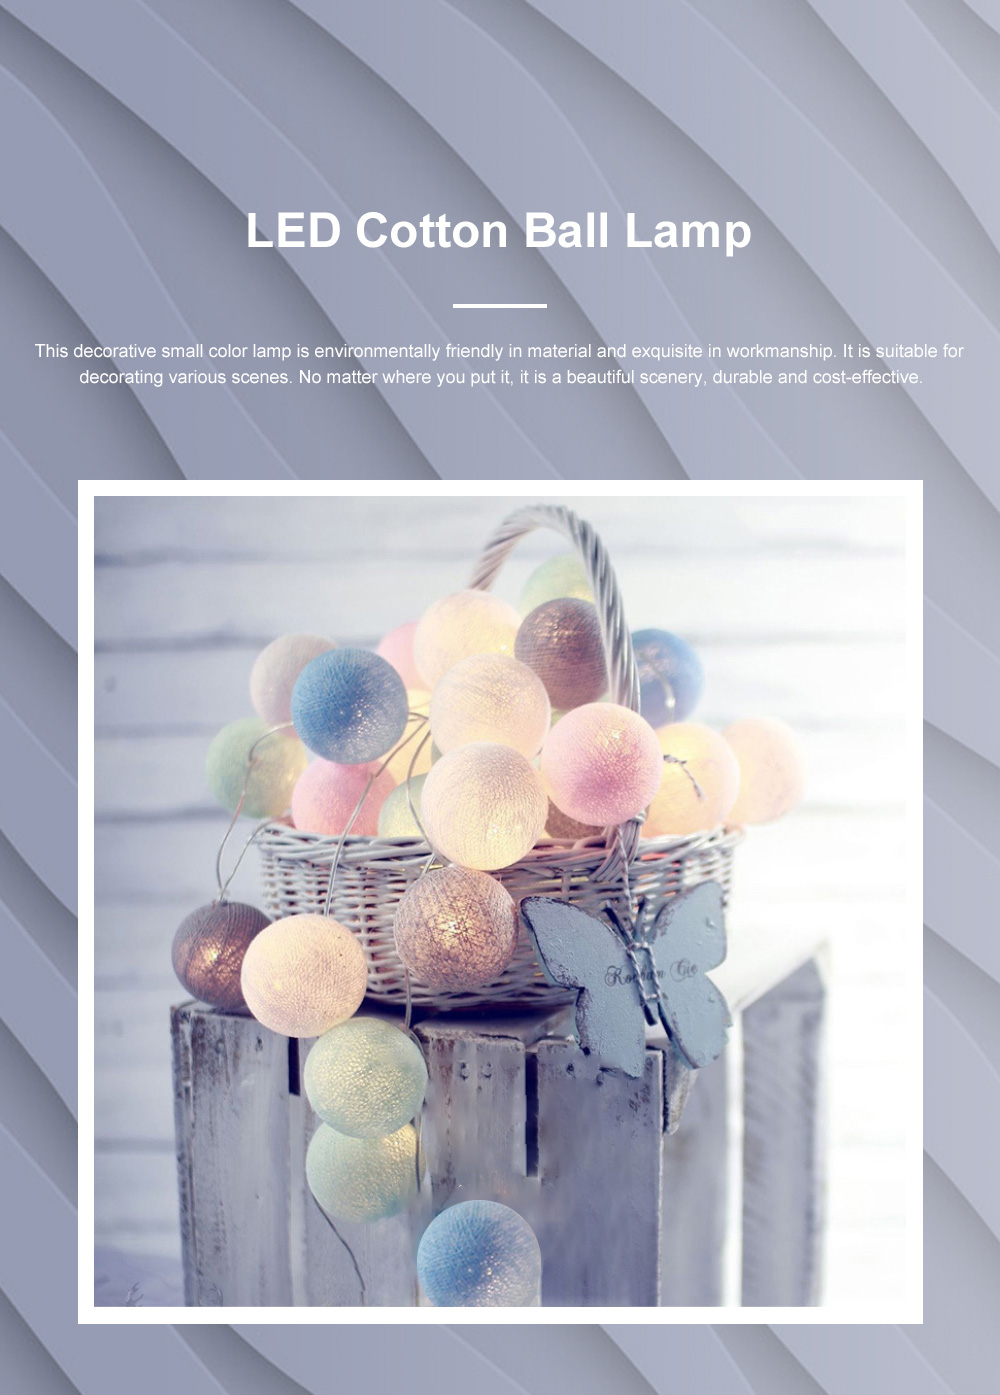 Decorative LED Cotton Ball Lamp String Children's Room Decorations Lights Lovely Fairy Lights Christmas Lights 0